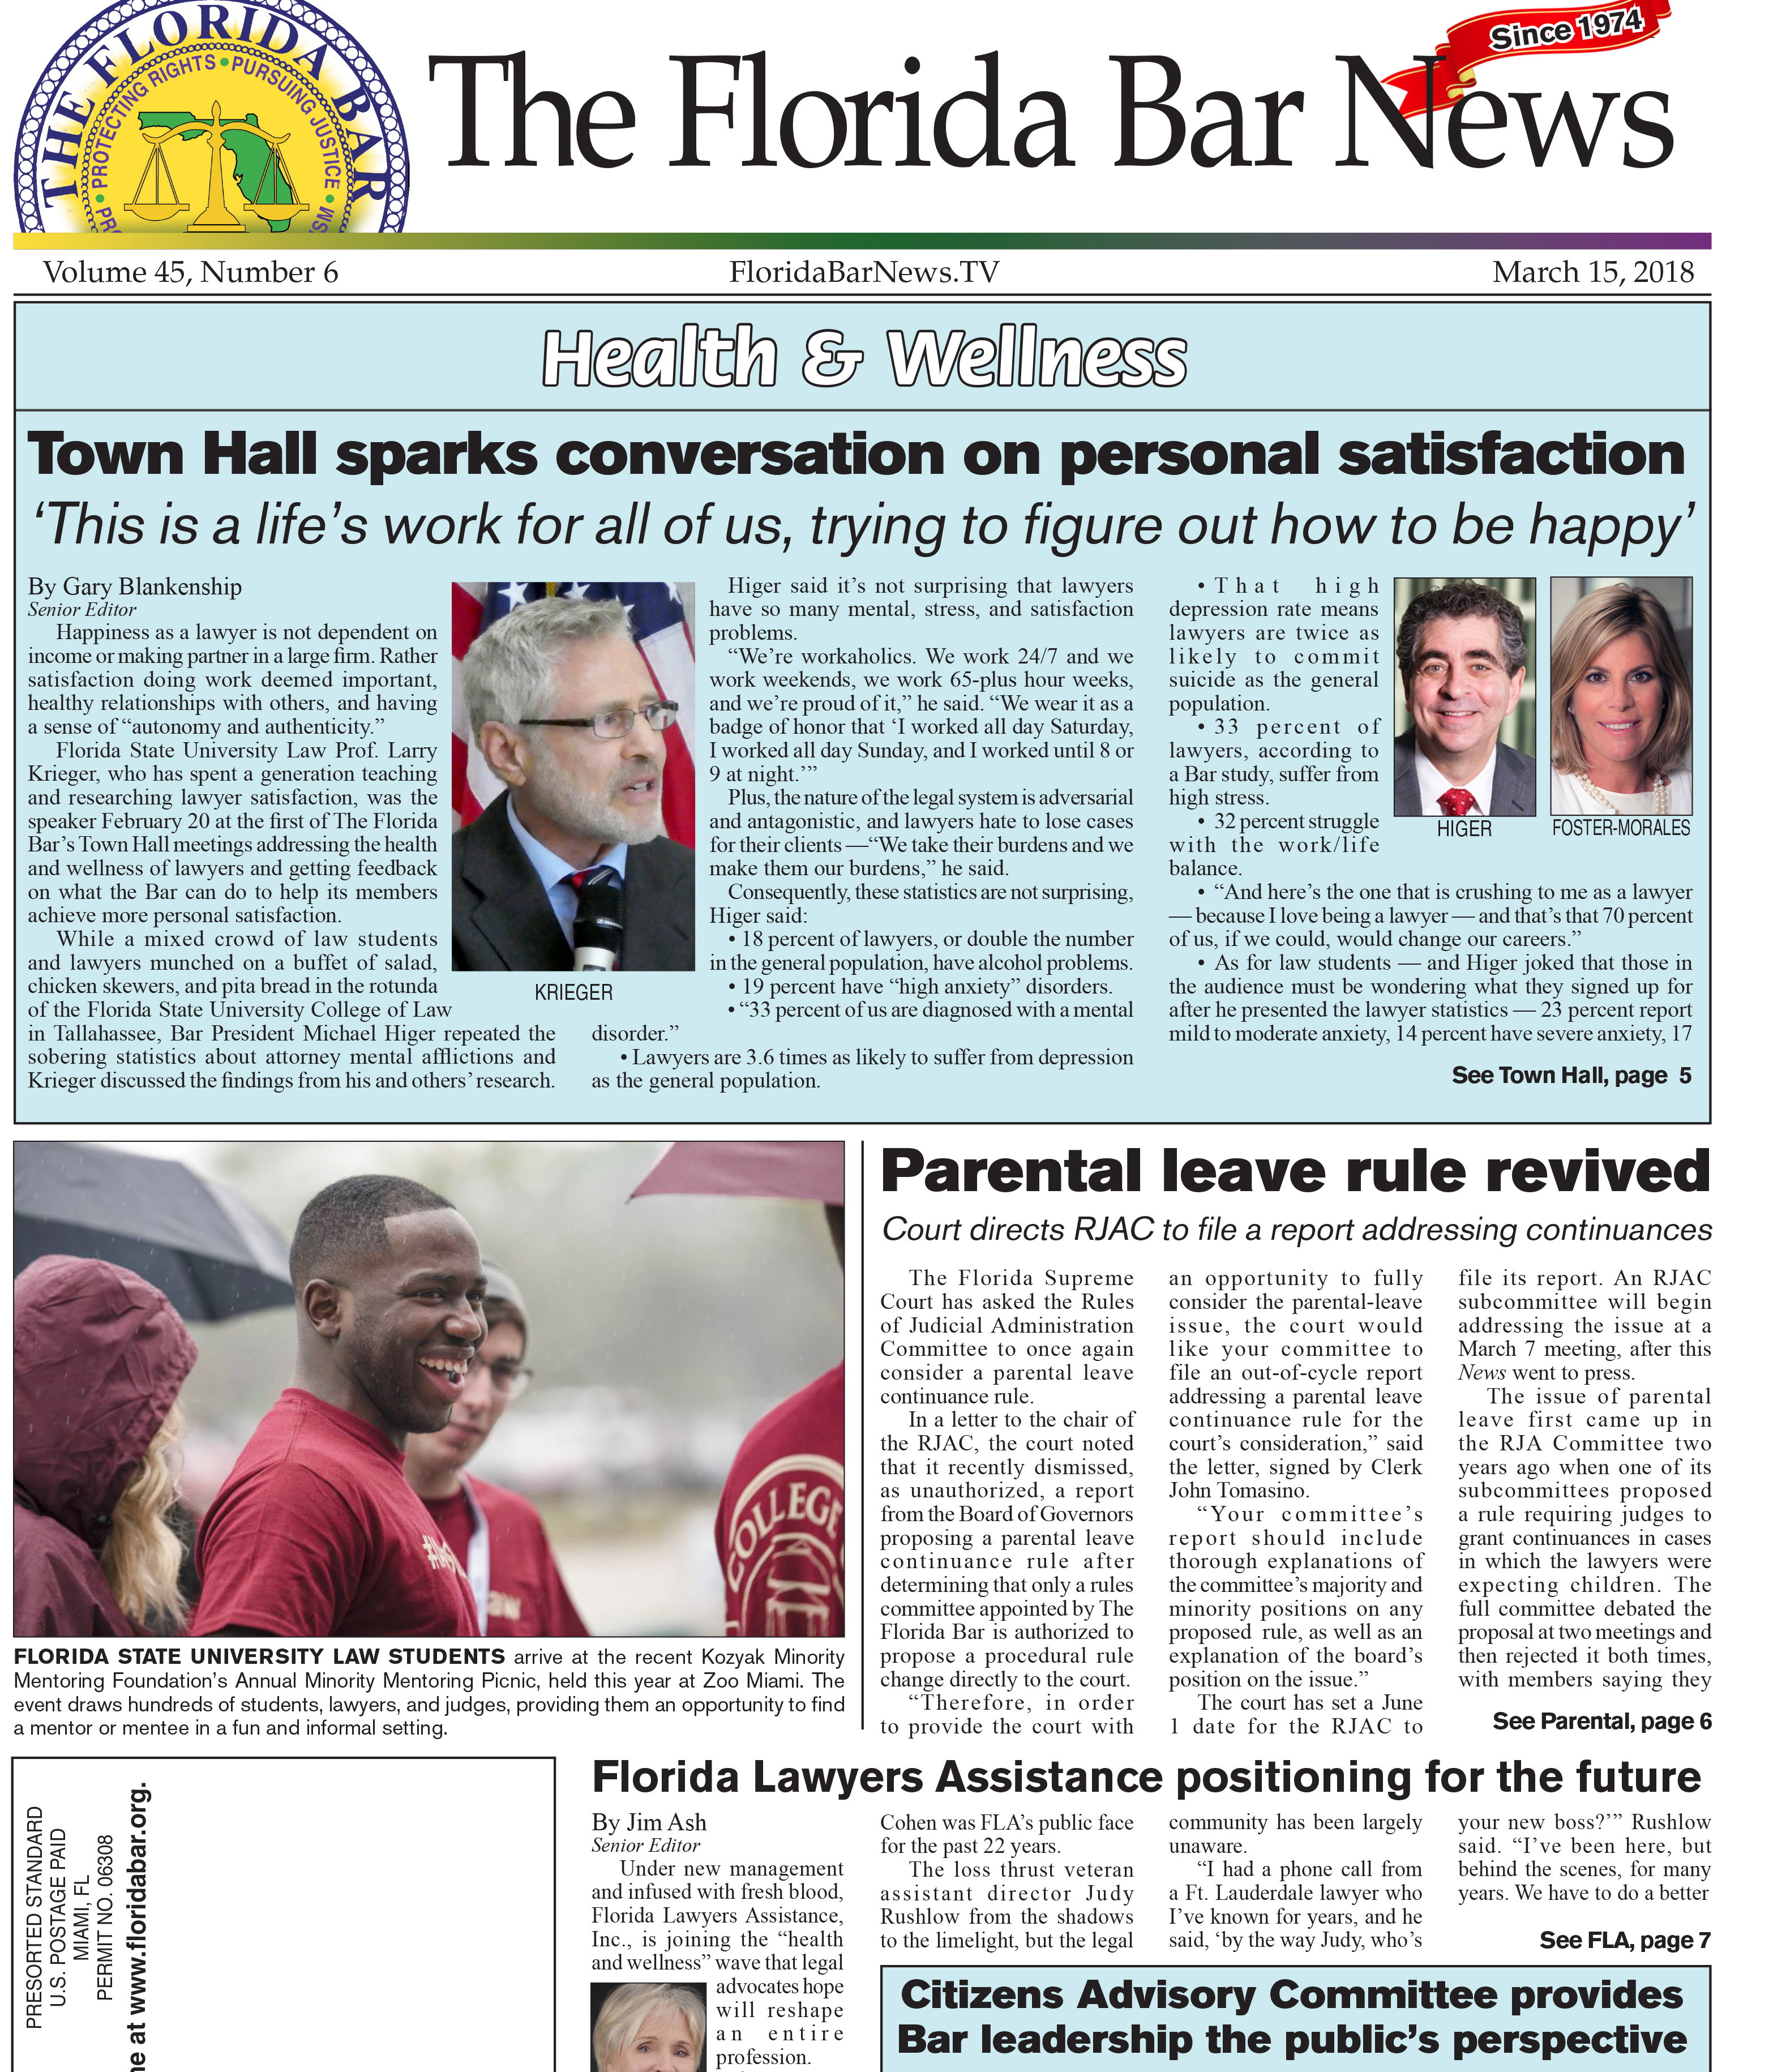 March 15, 2018 Florida Bar News Cover